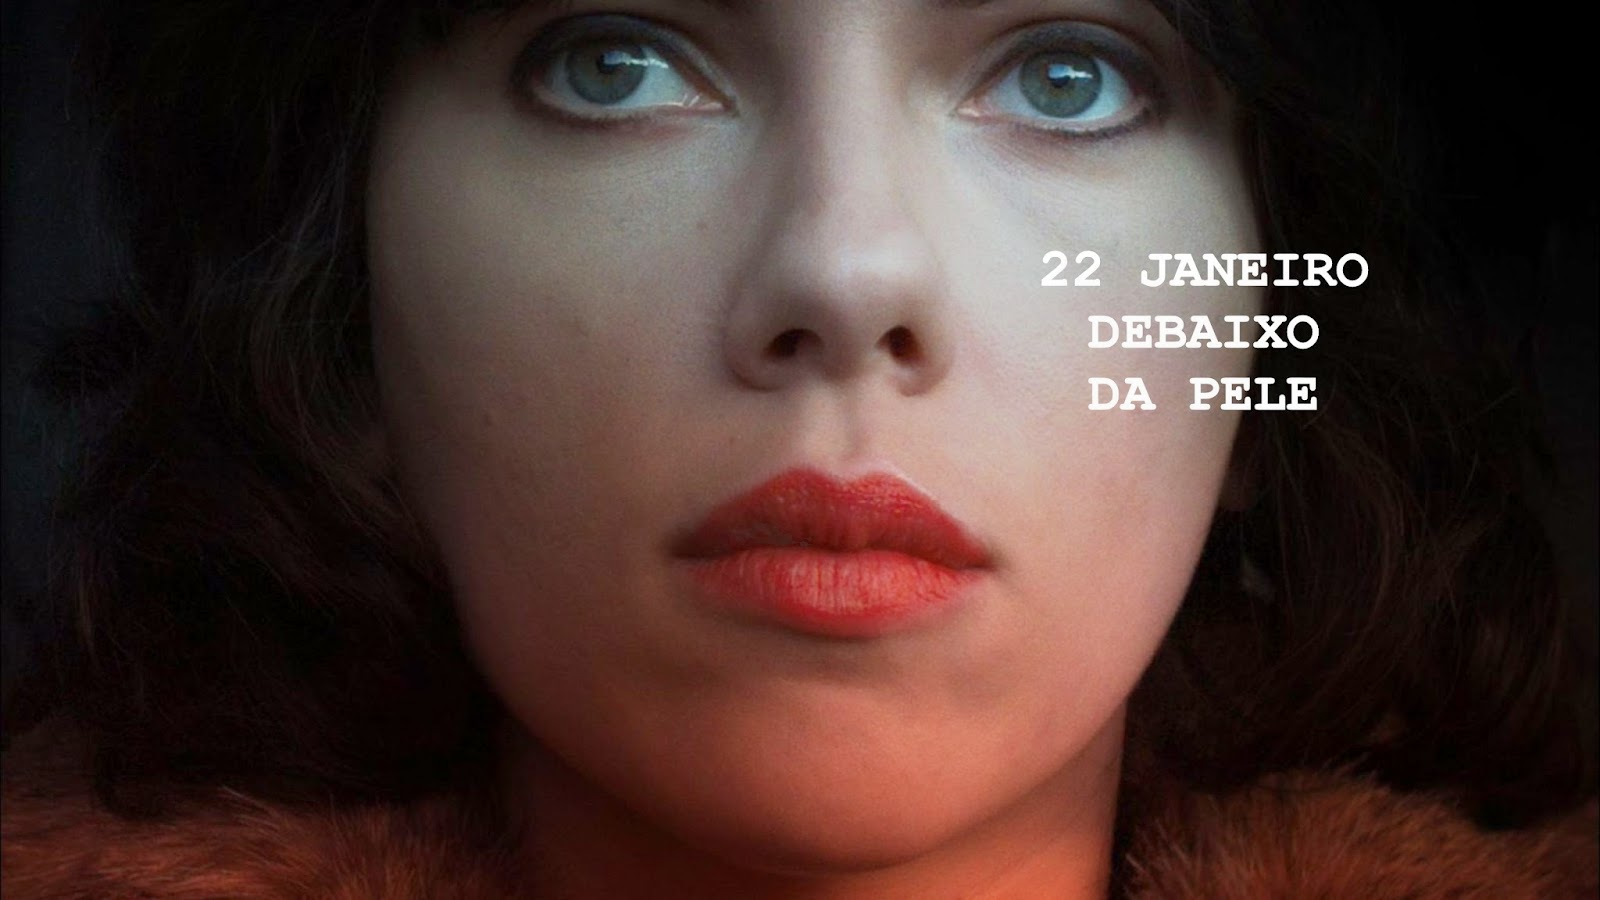 Debaixo da Pele - Under the Skin (2013) de Jonathan Glazer